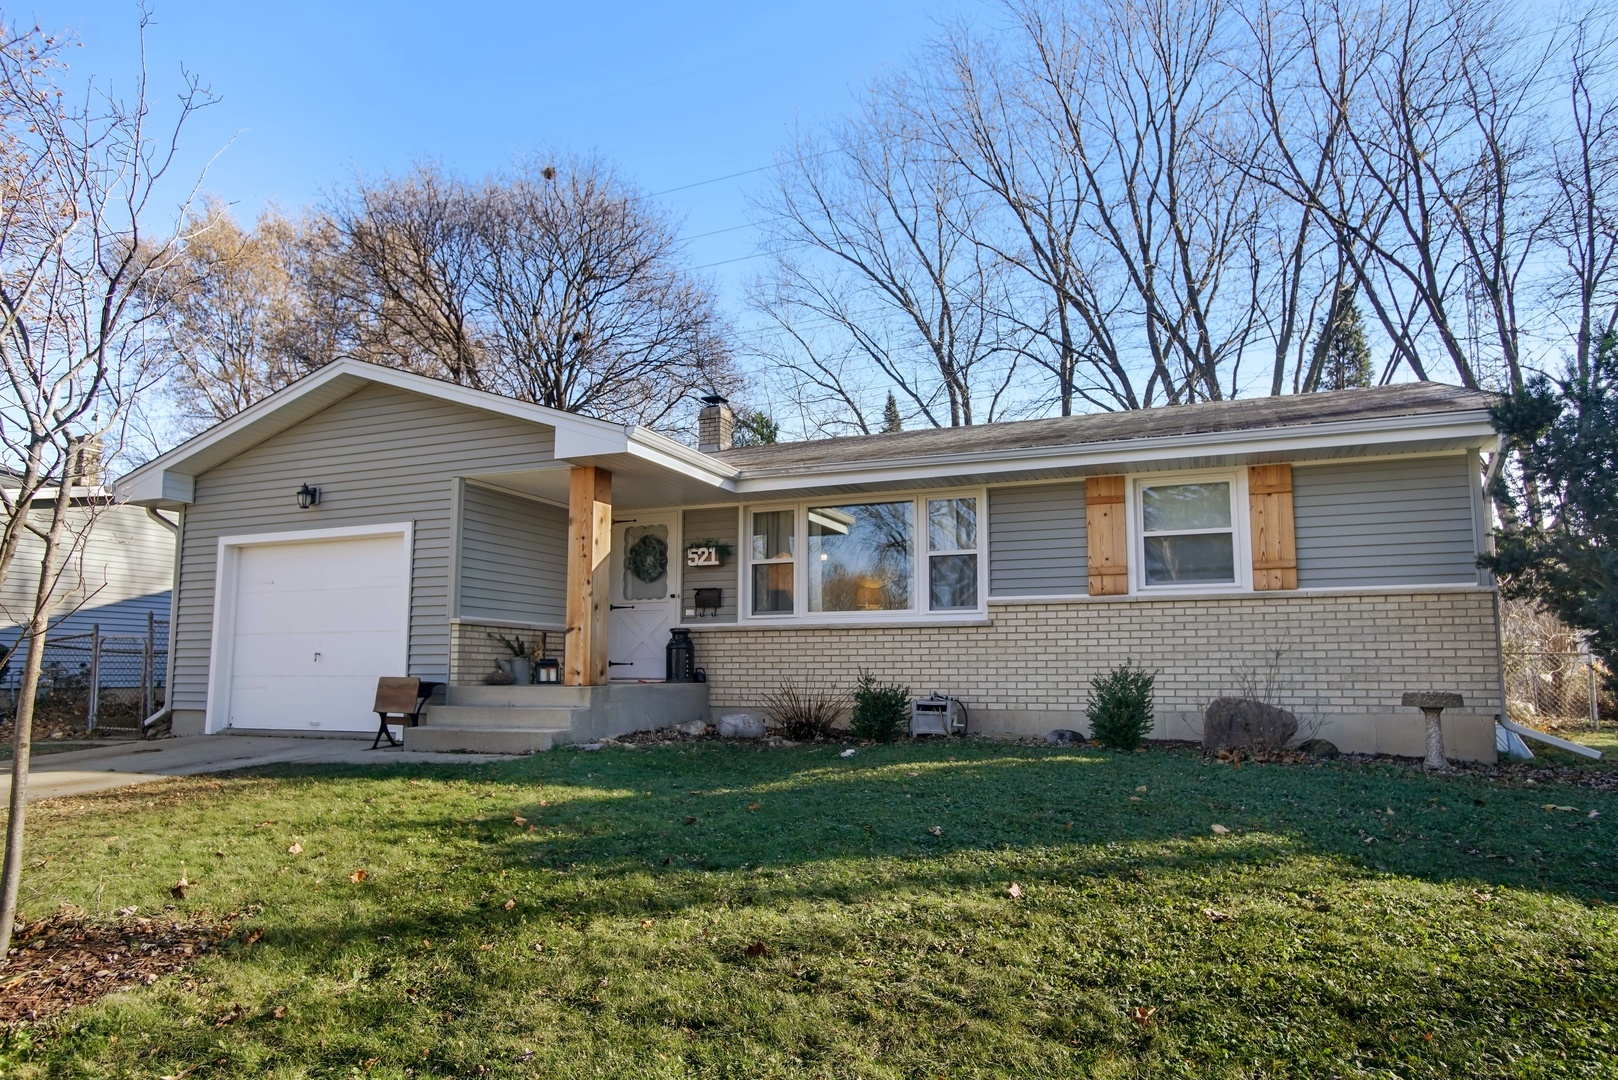 Photo for 521 Crest Drive, CARY, IL 60013 (MLS # 10138900)